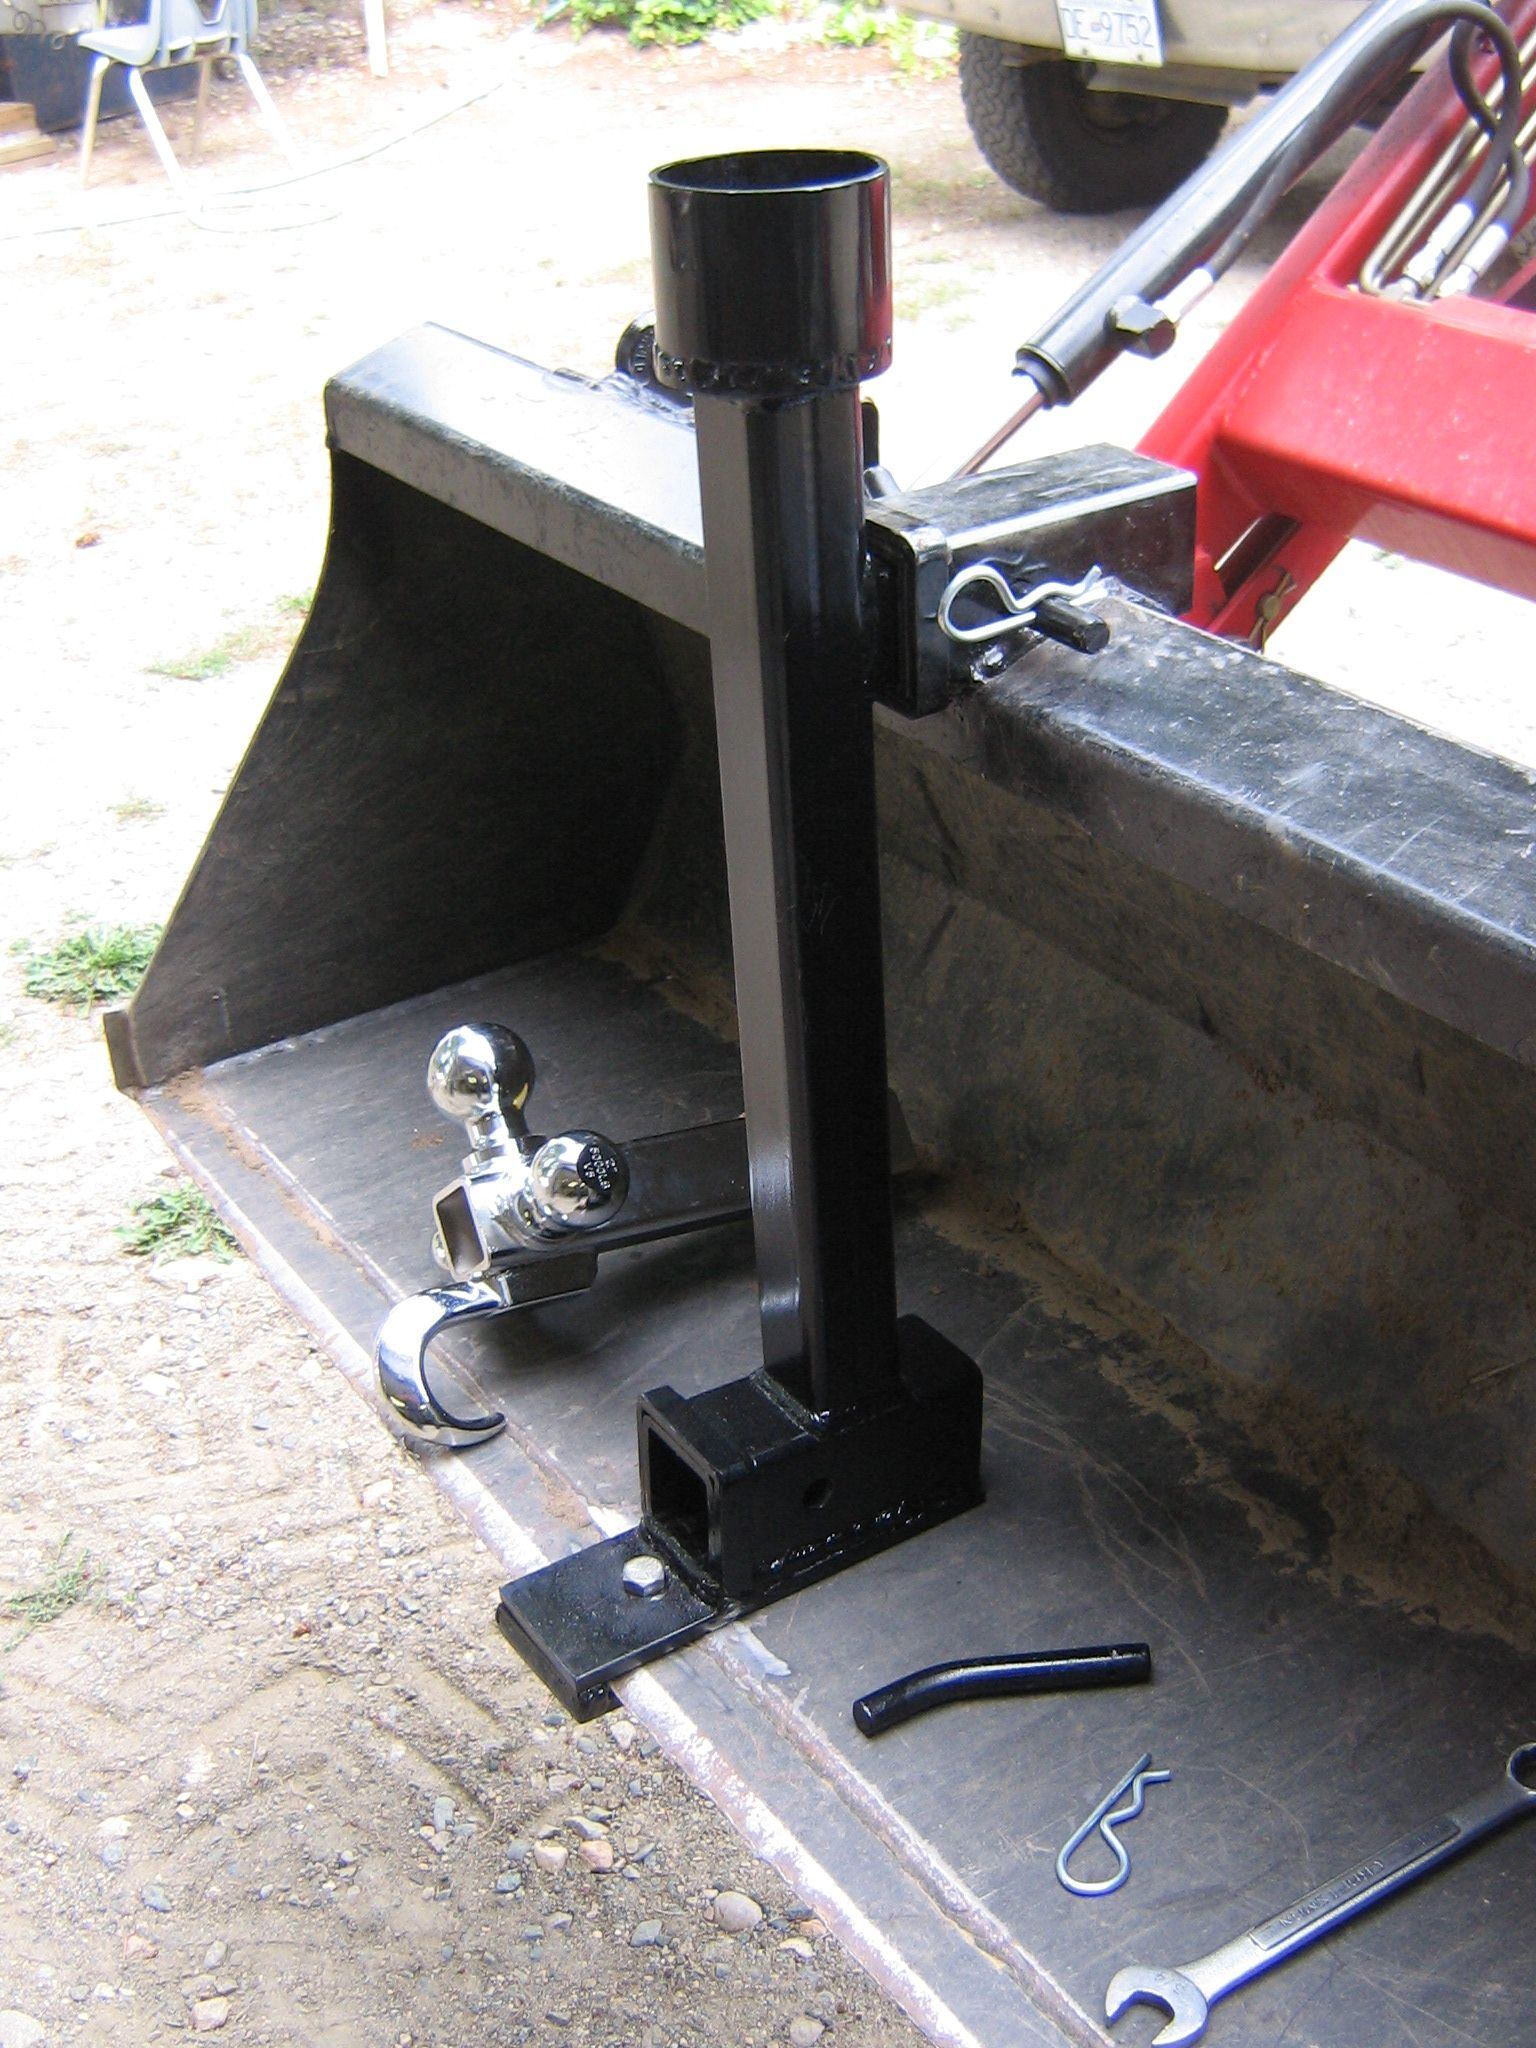 Fifth Wheel To Gooseneck Hitch >> Pin by Aaron Muth on Build Ideas | Tractors, Semi trailer, Old farm